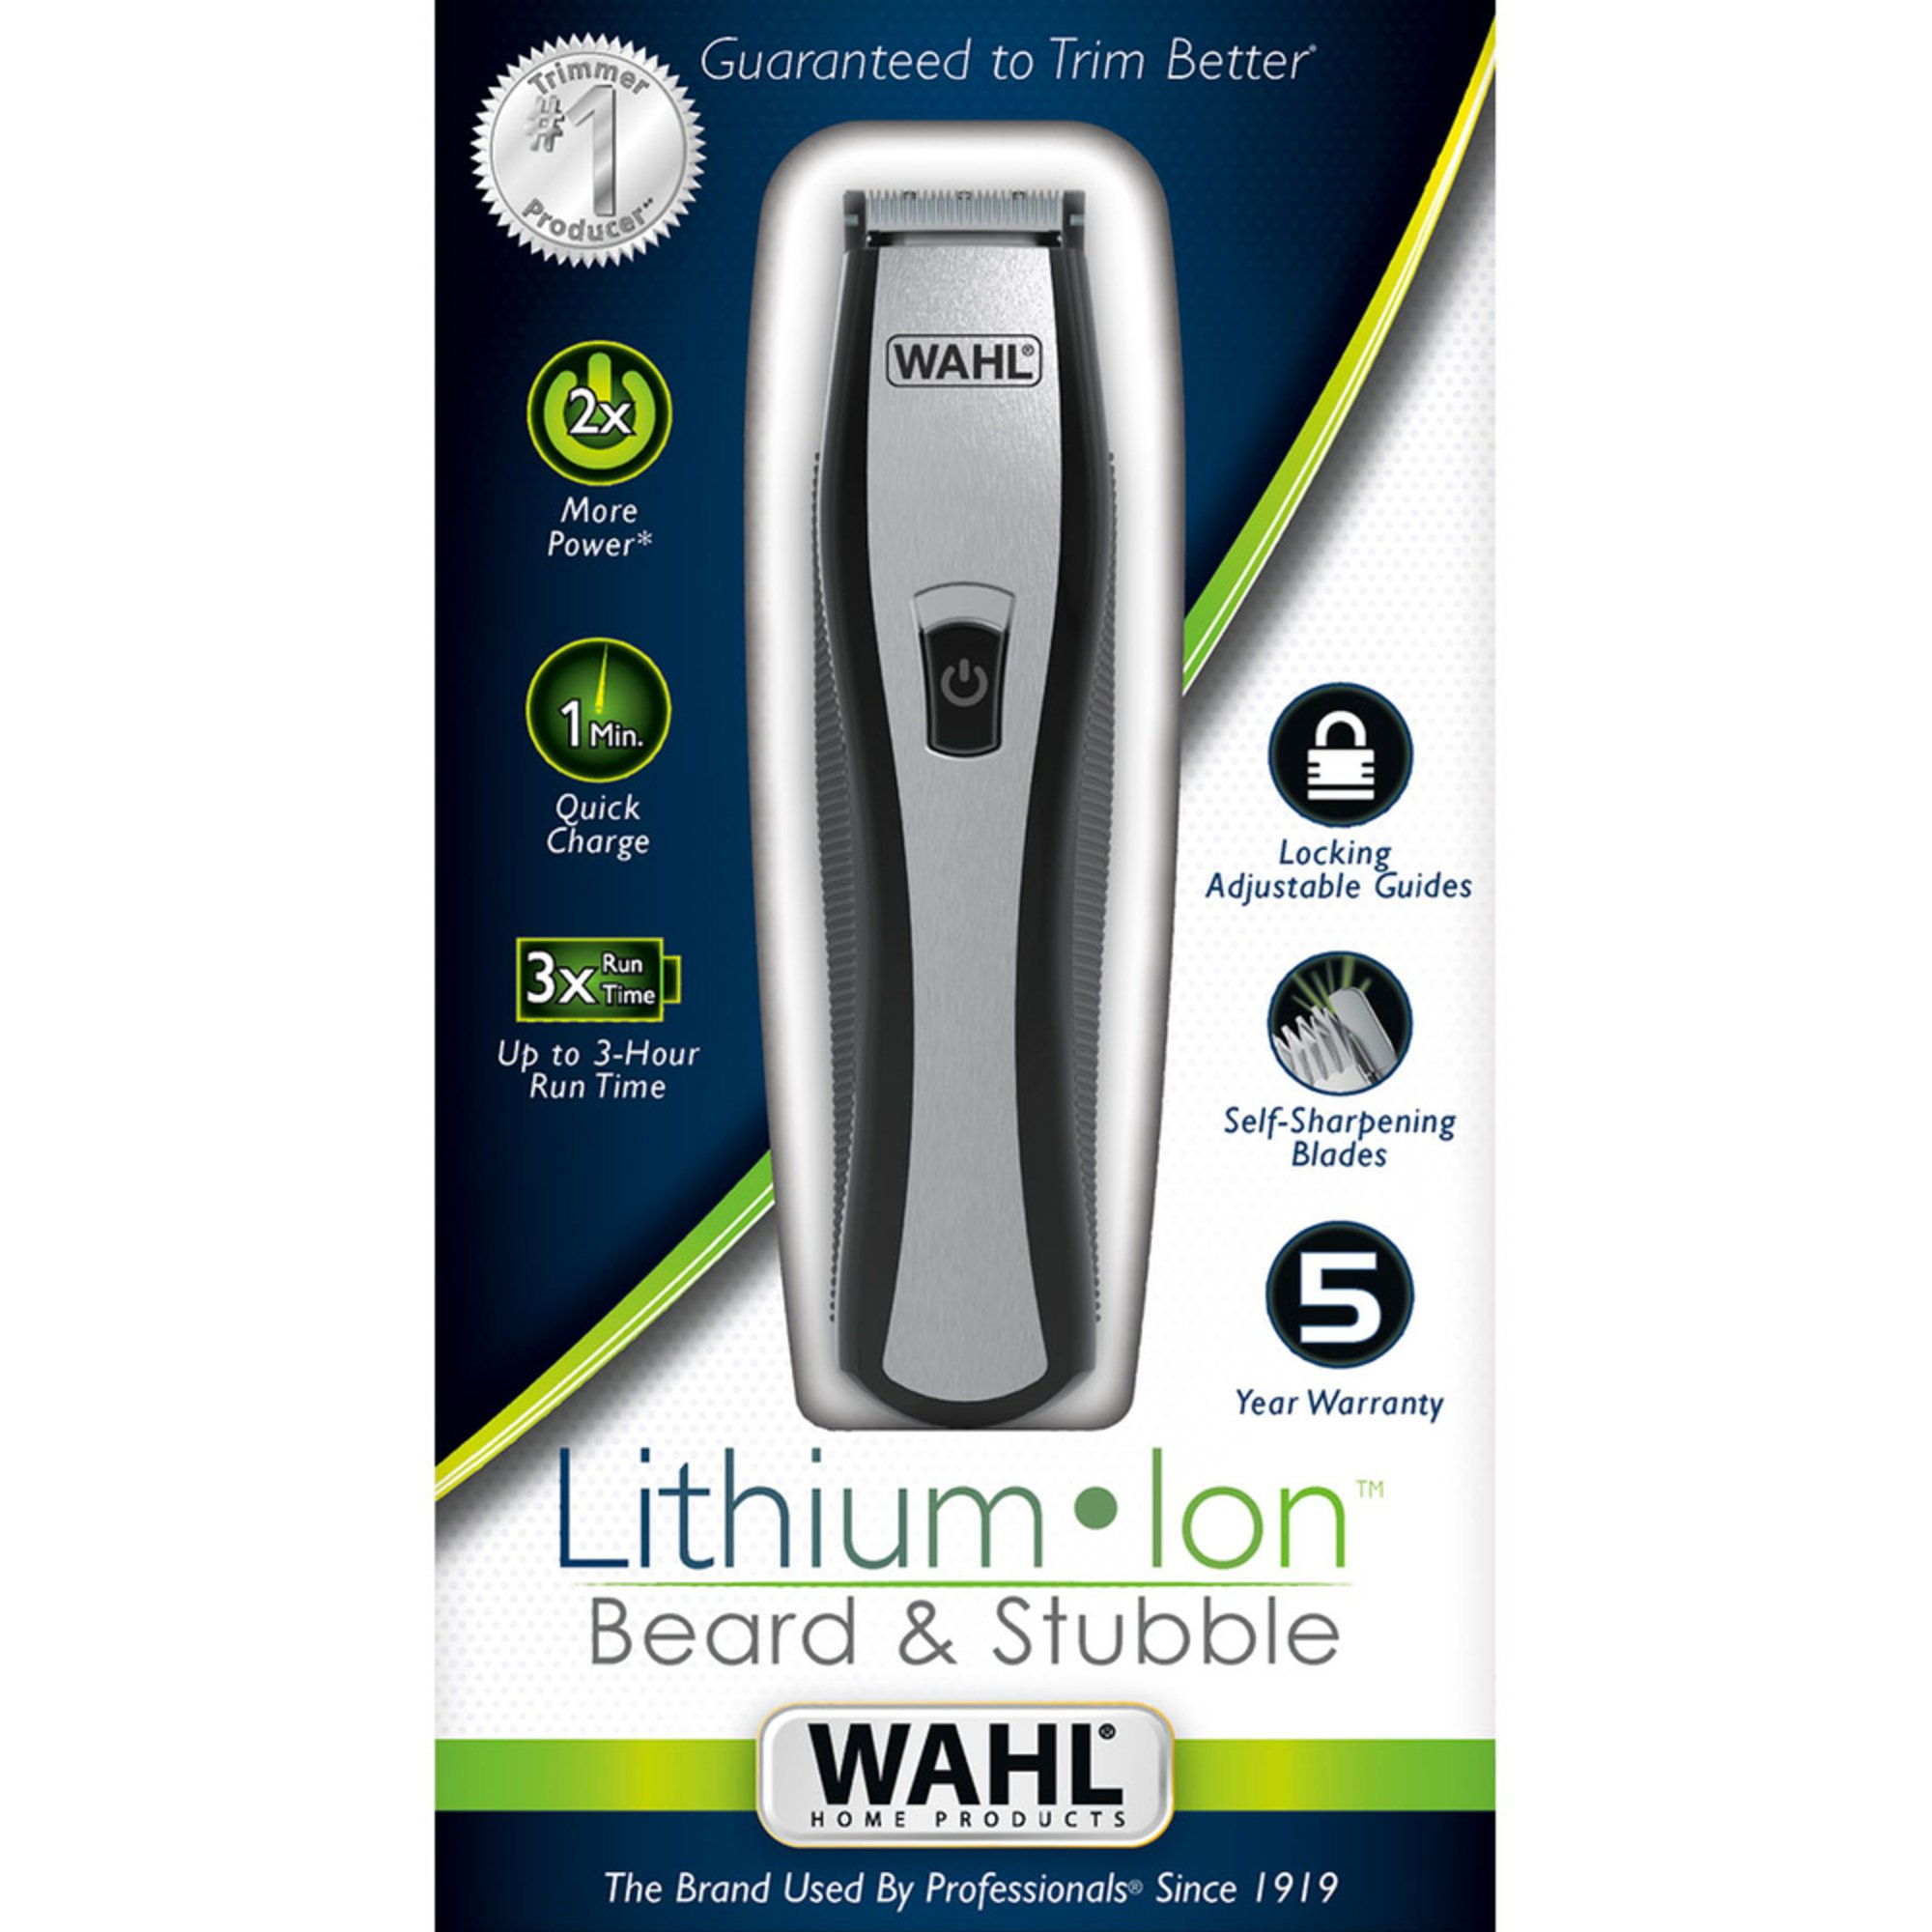 wahl 9867 lithium ion beard and stubble trimmer groomers trimmers shop your navy exchange. Black Bedroom Furniture Sets. Home Design Ideas